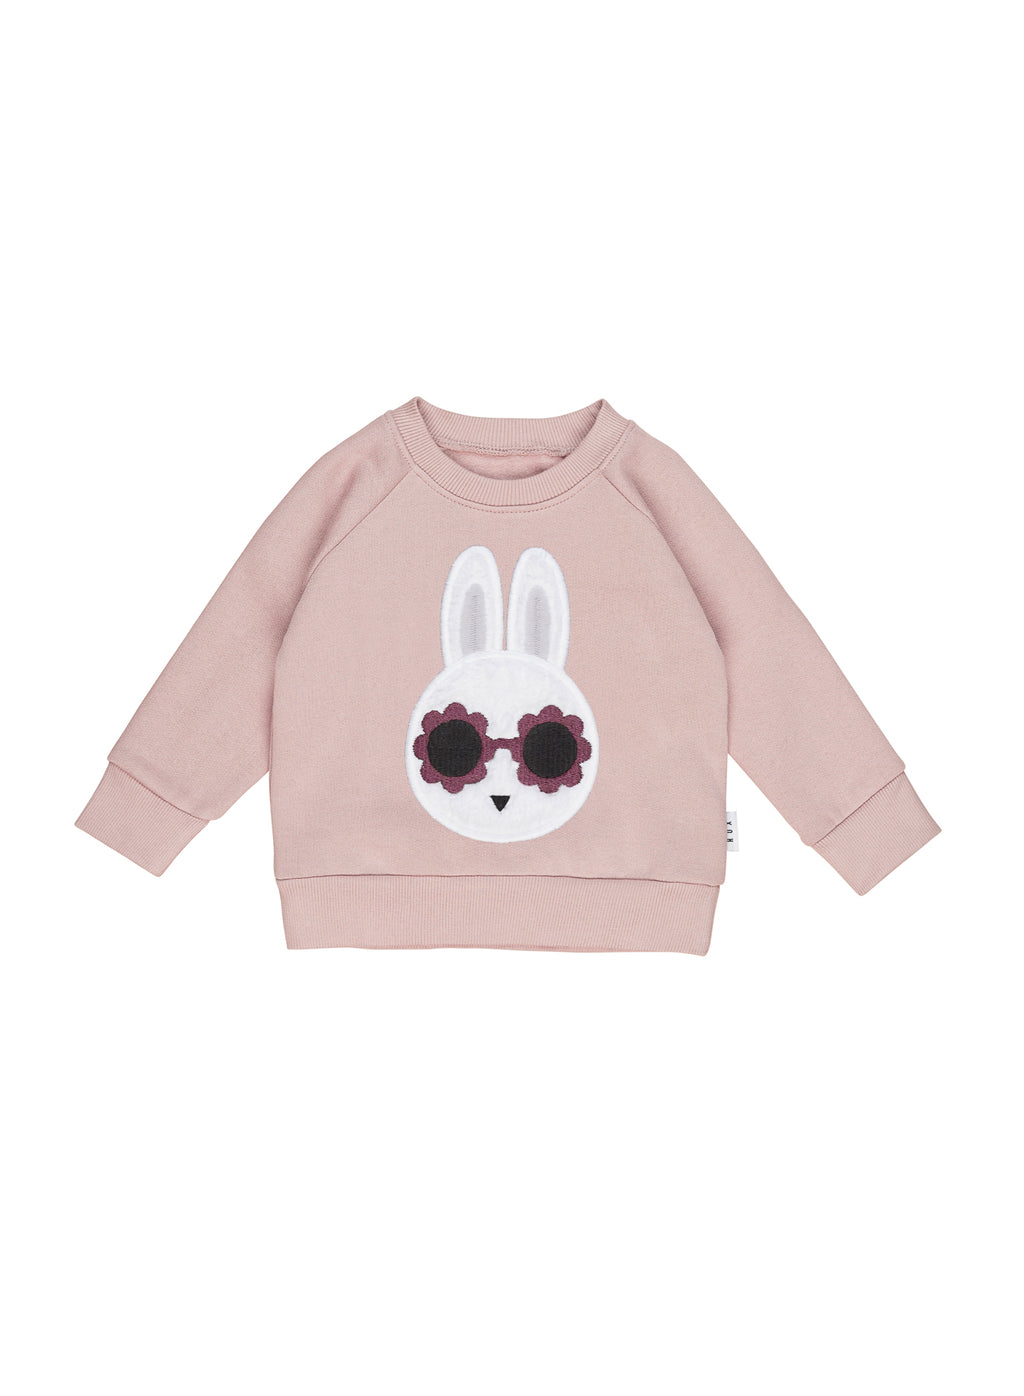 Huxbaby_Bunny Sweatshirt - The Child Hood